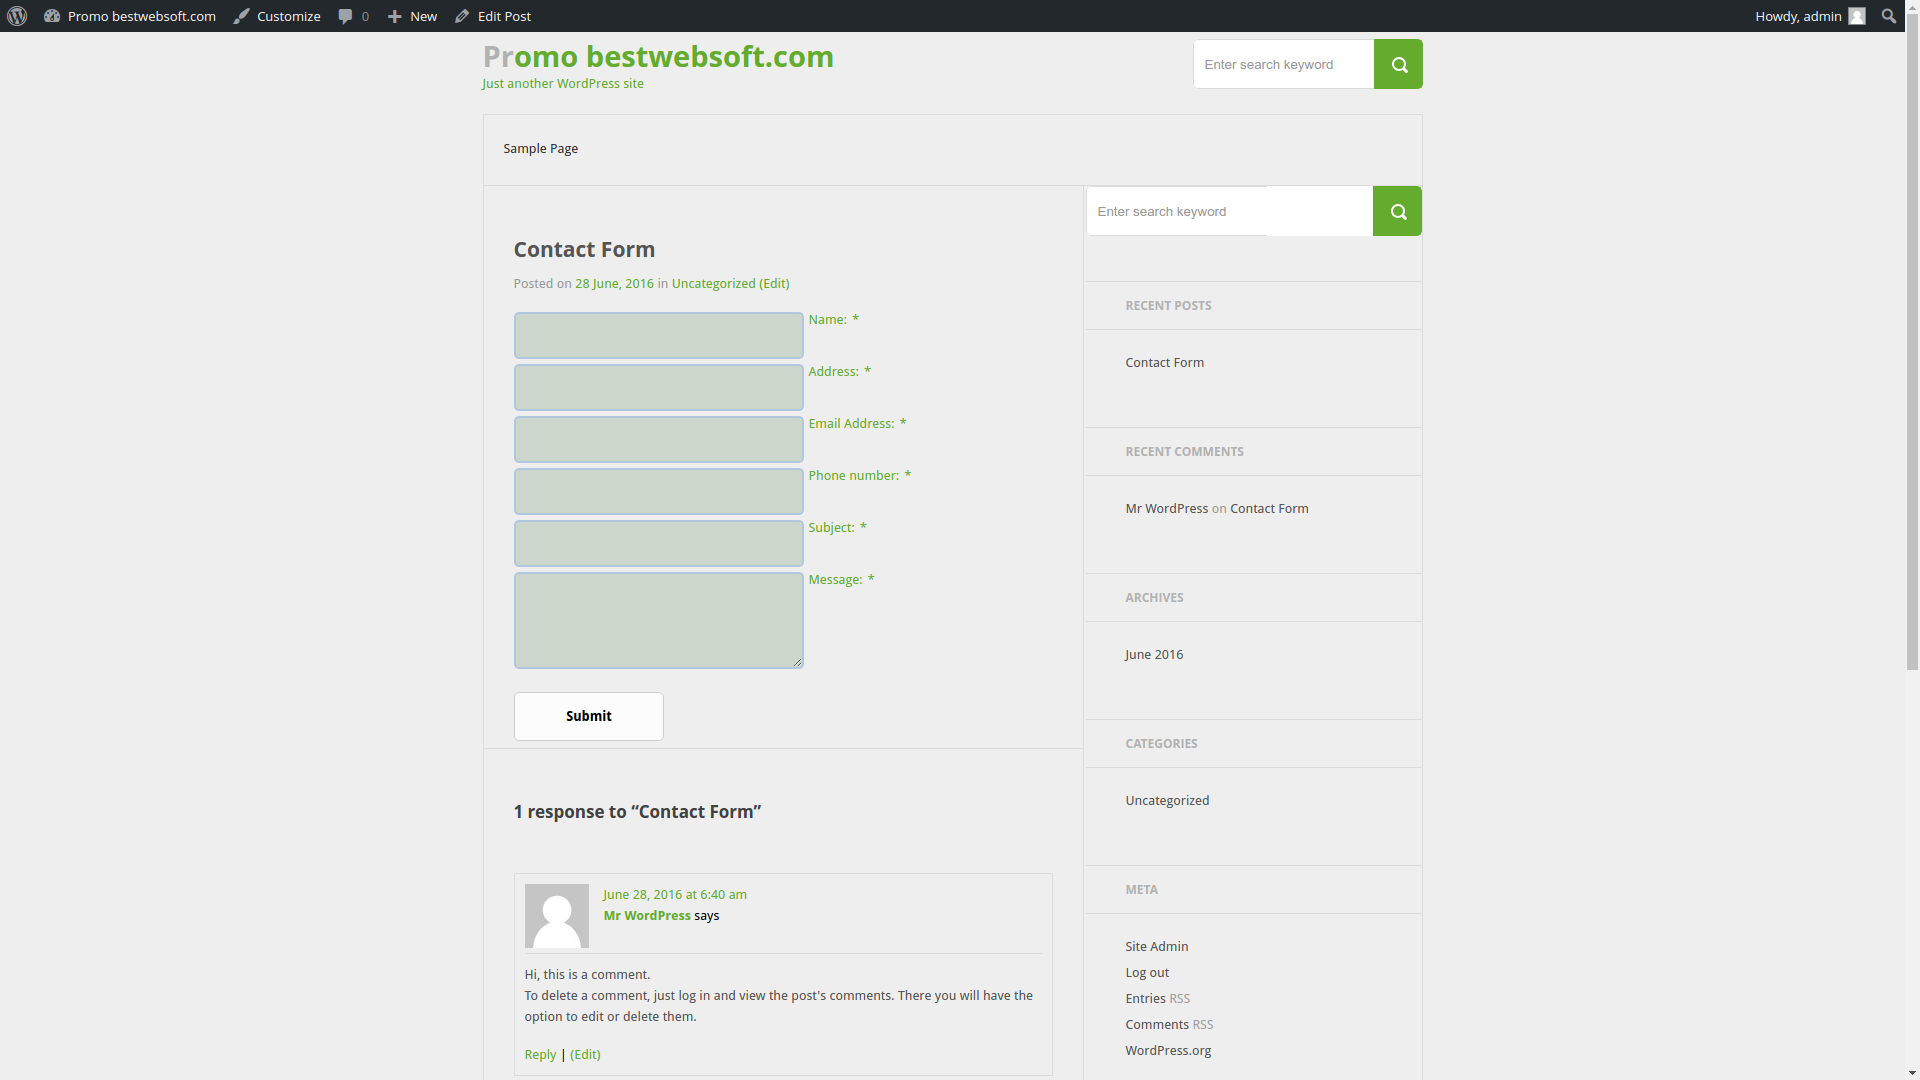 contact form screenshot 10